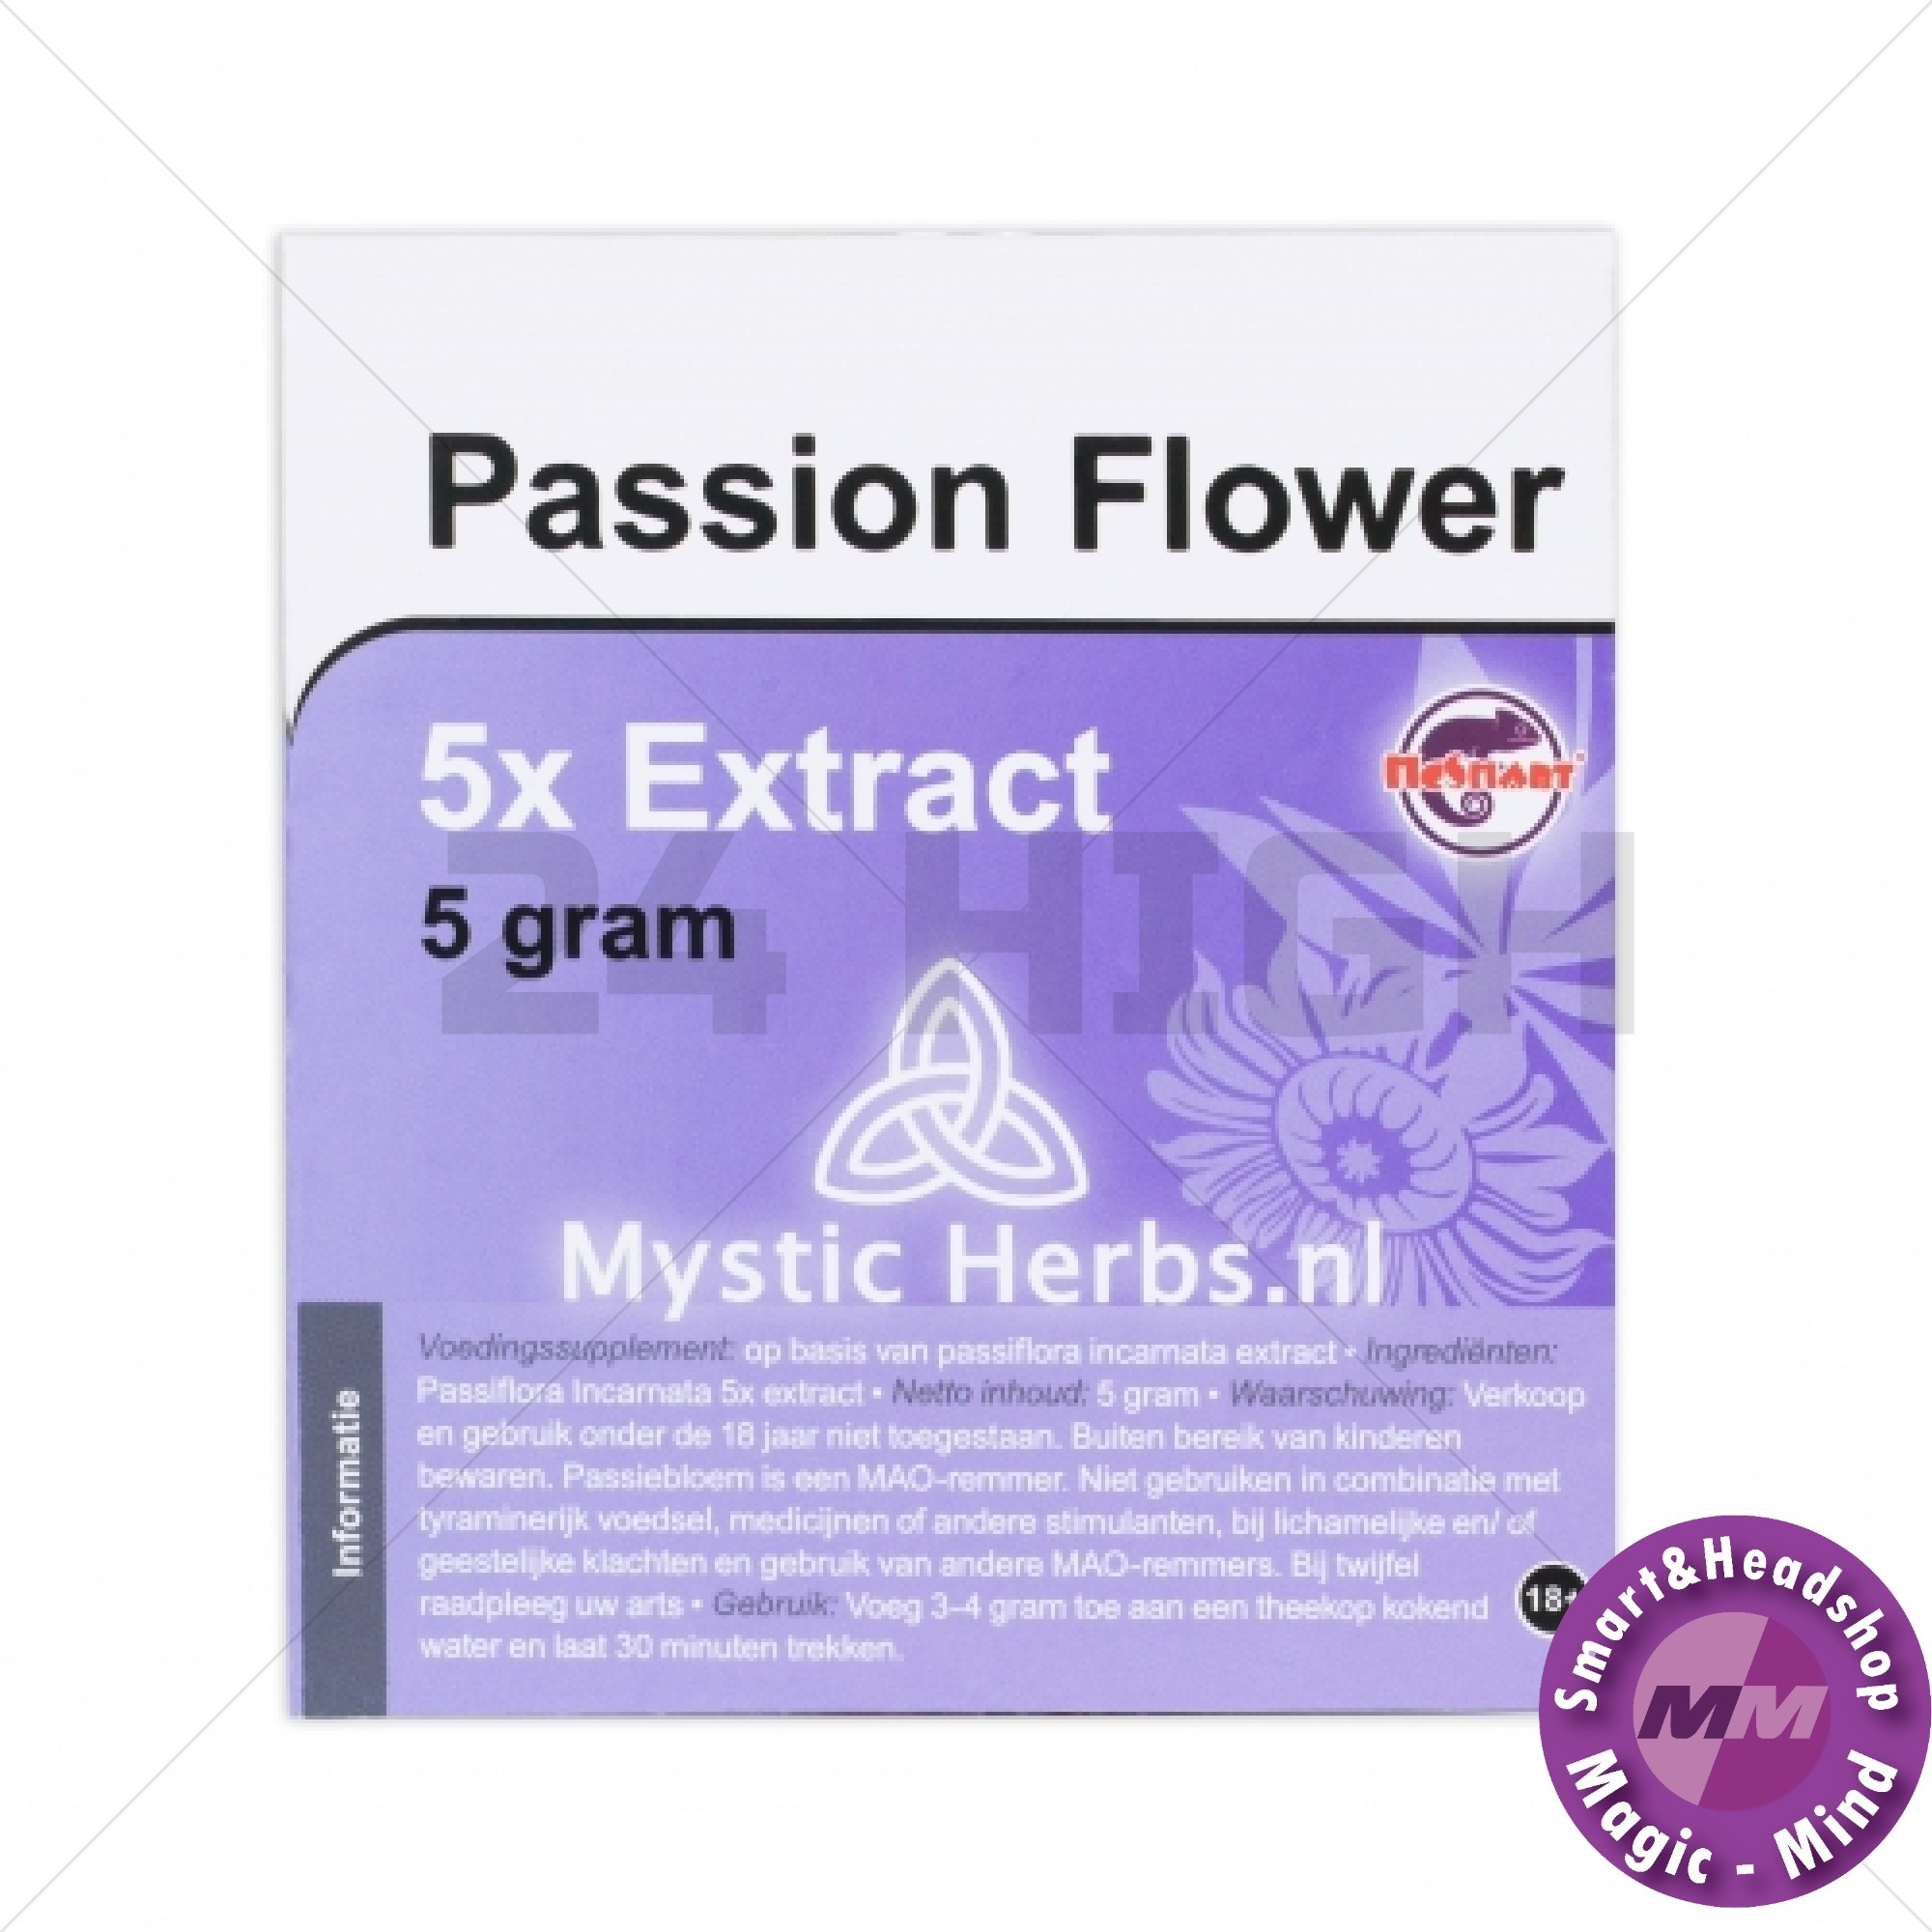 Passion Flower 5X Extract